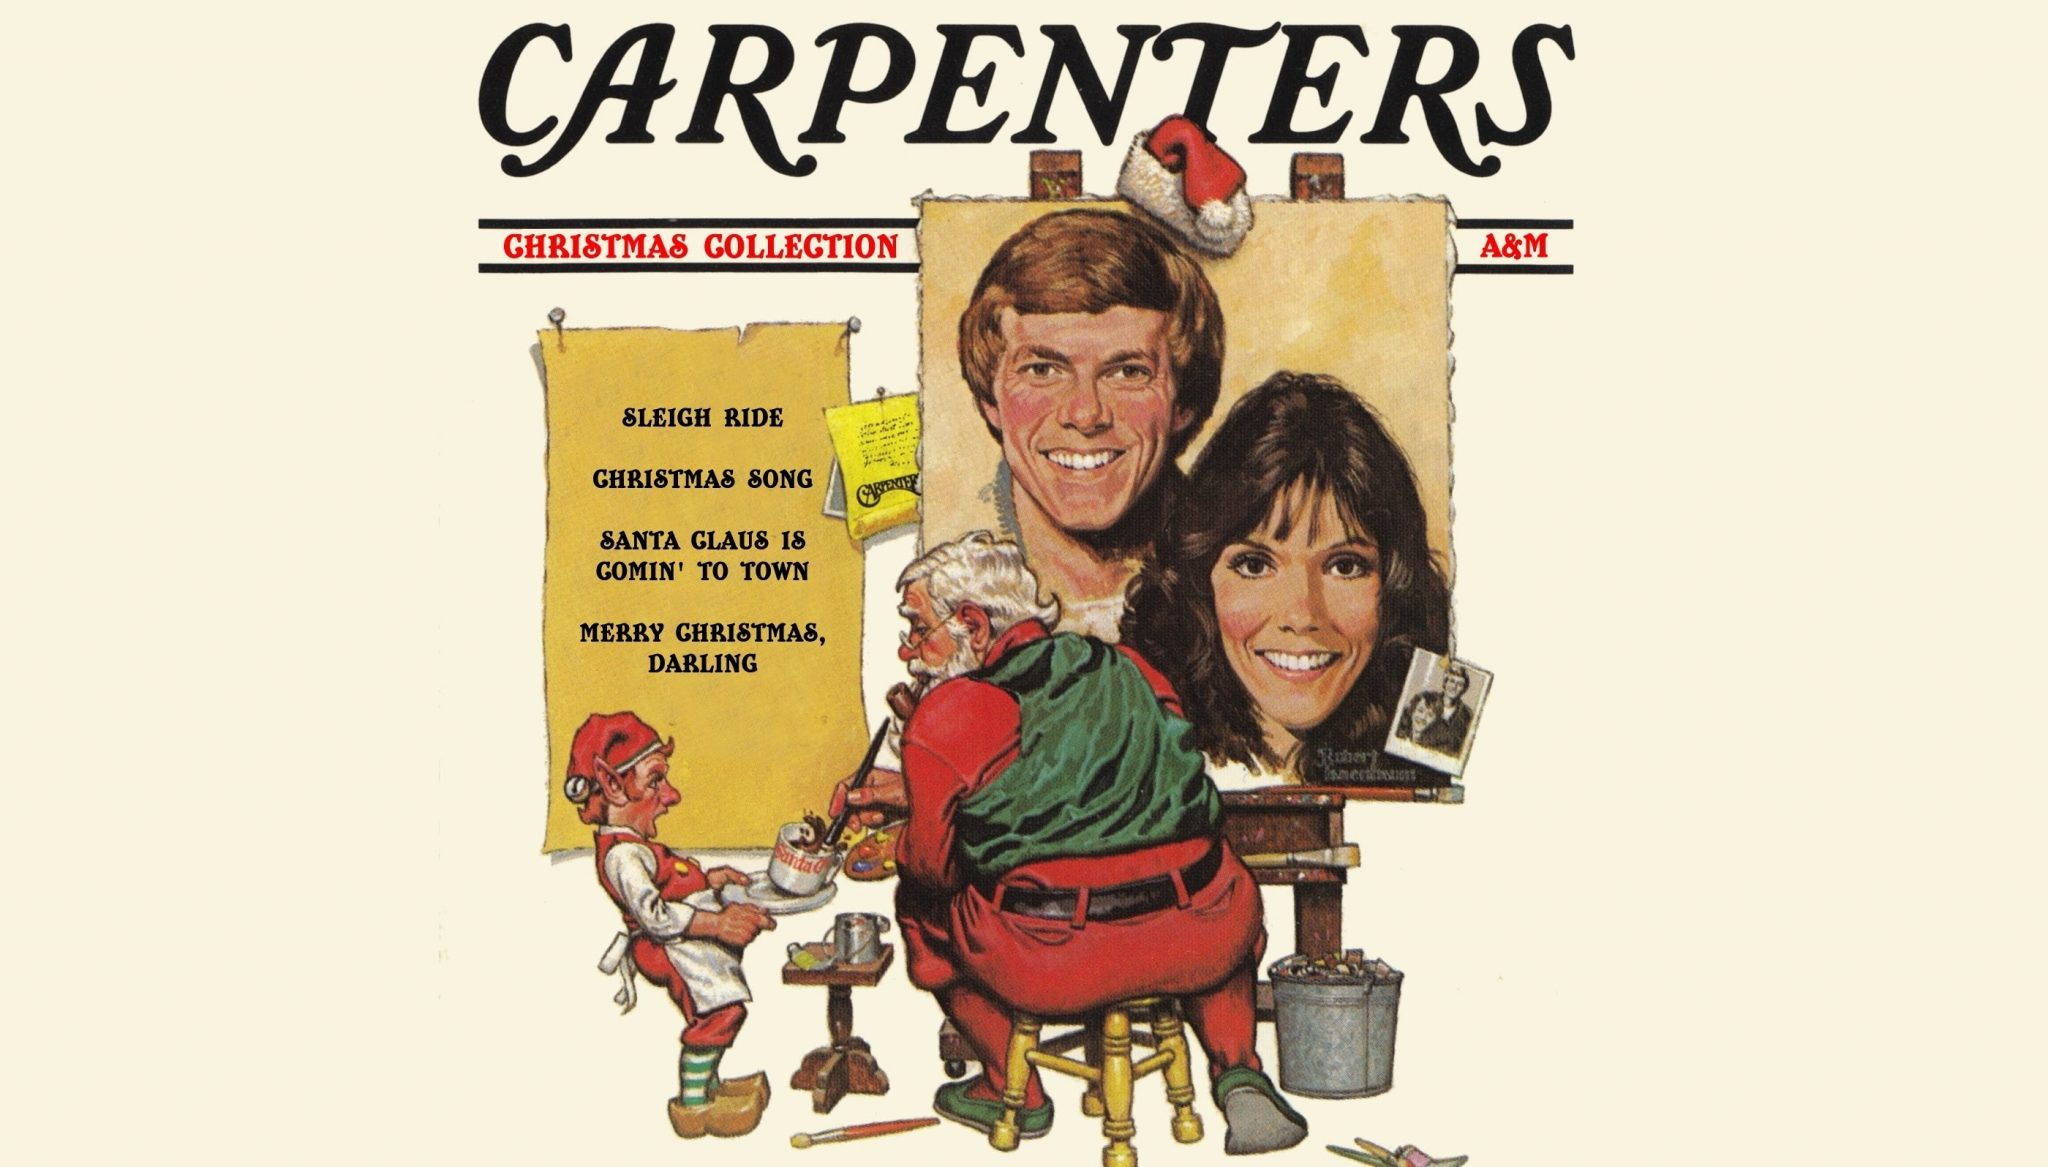 Carpenters Christmas.Merry Christmas Darling 8 Things About The Carpenters Every